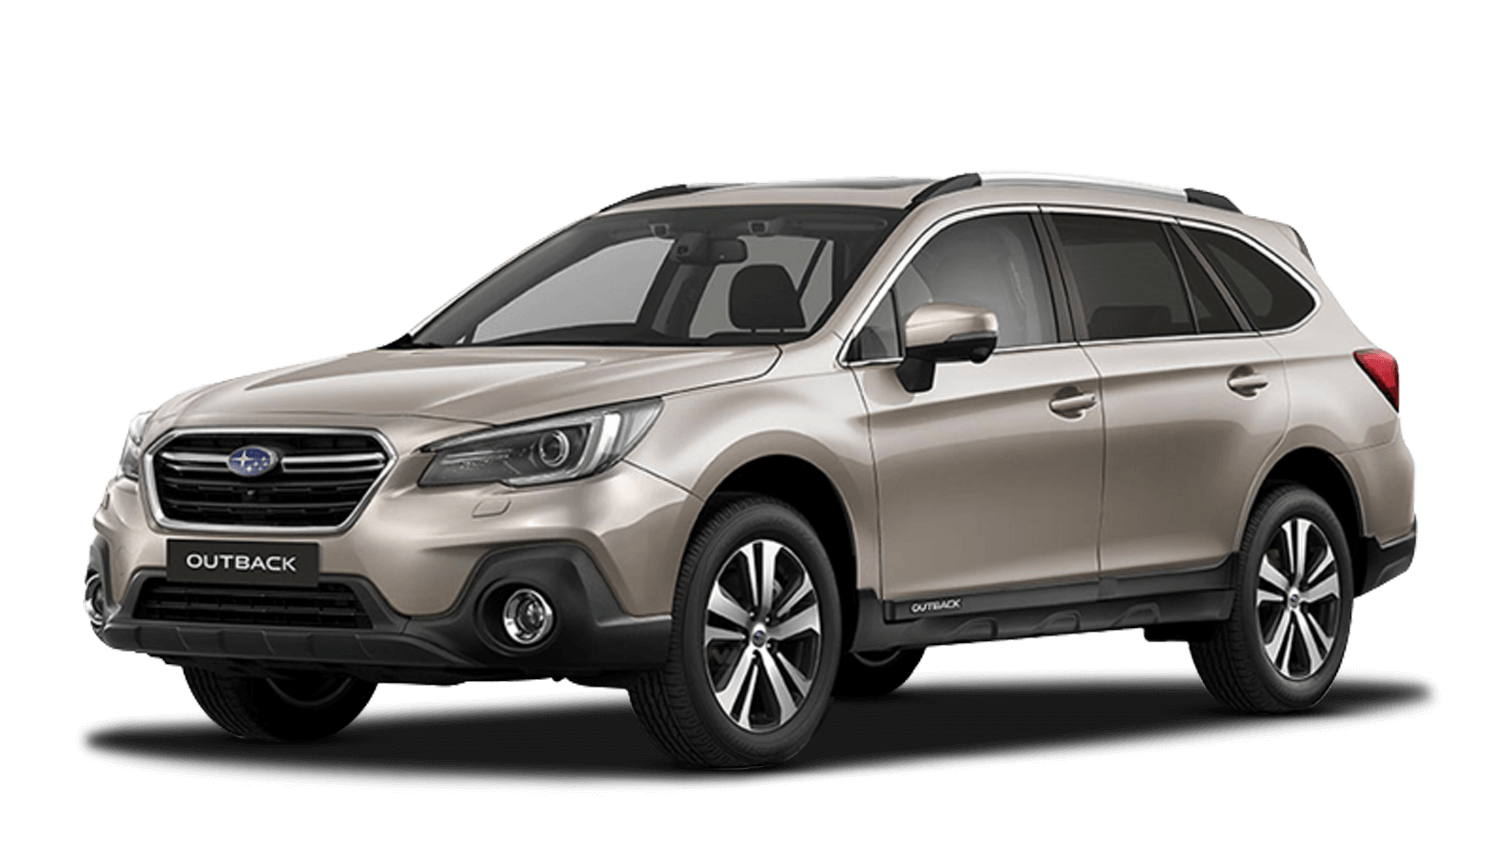 Tungsten Metallic Subaru Outback